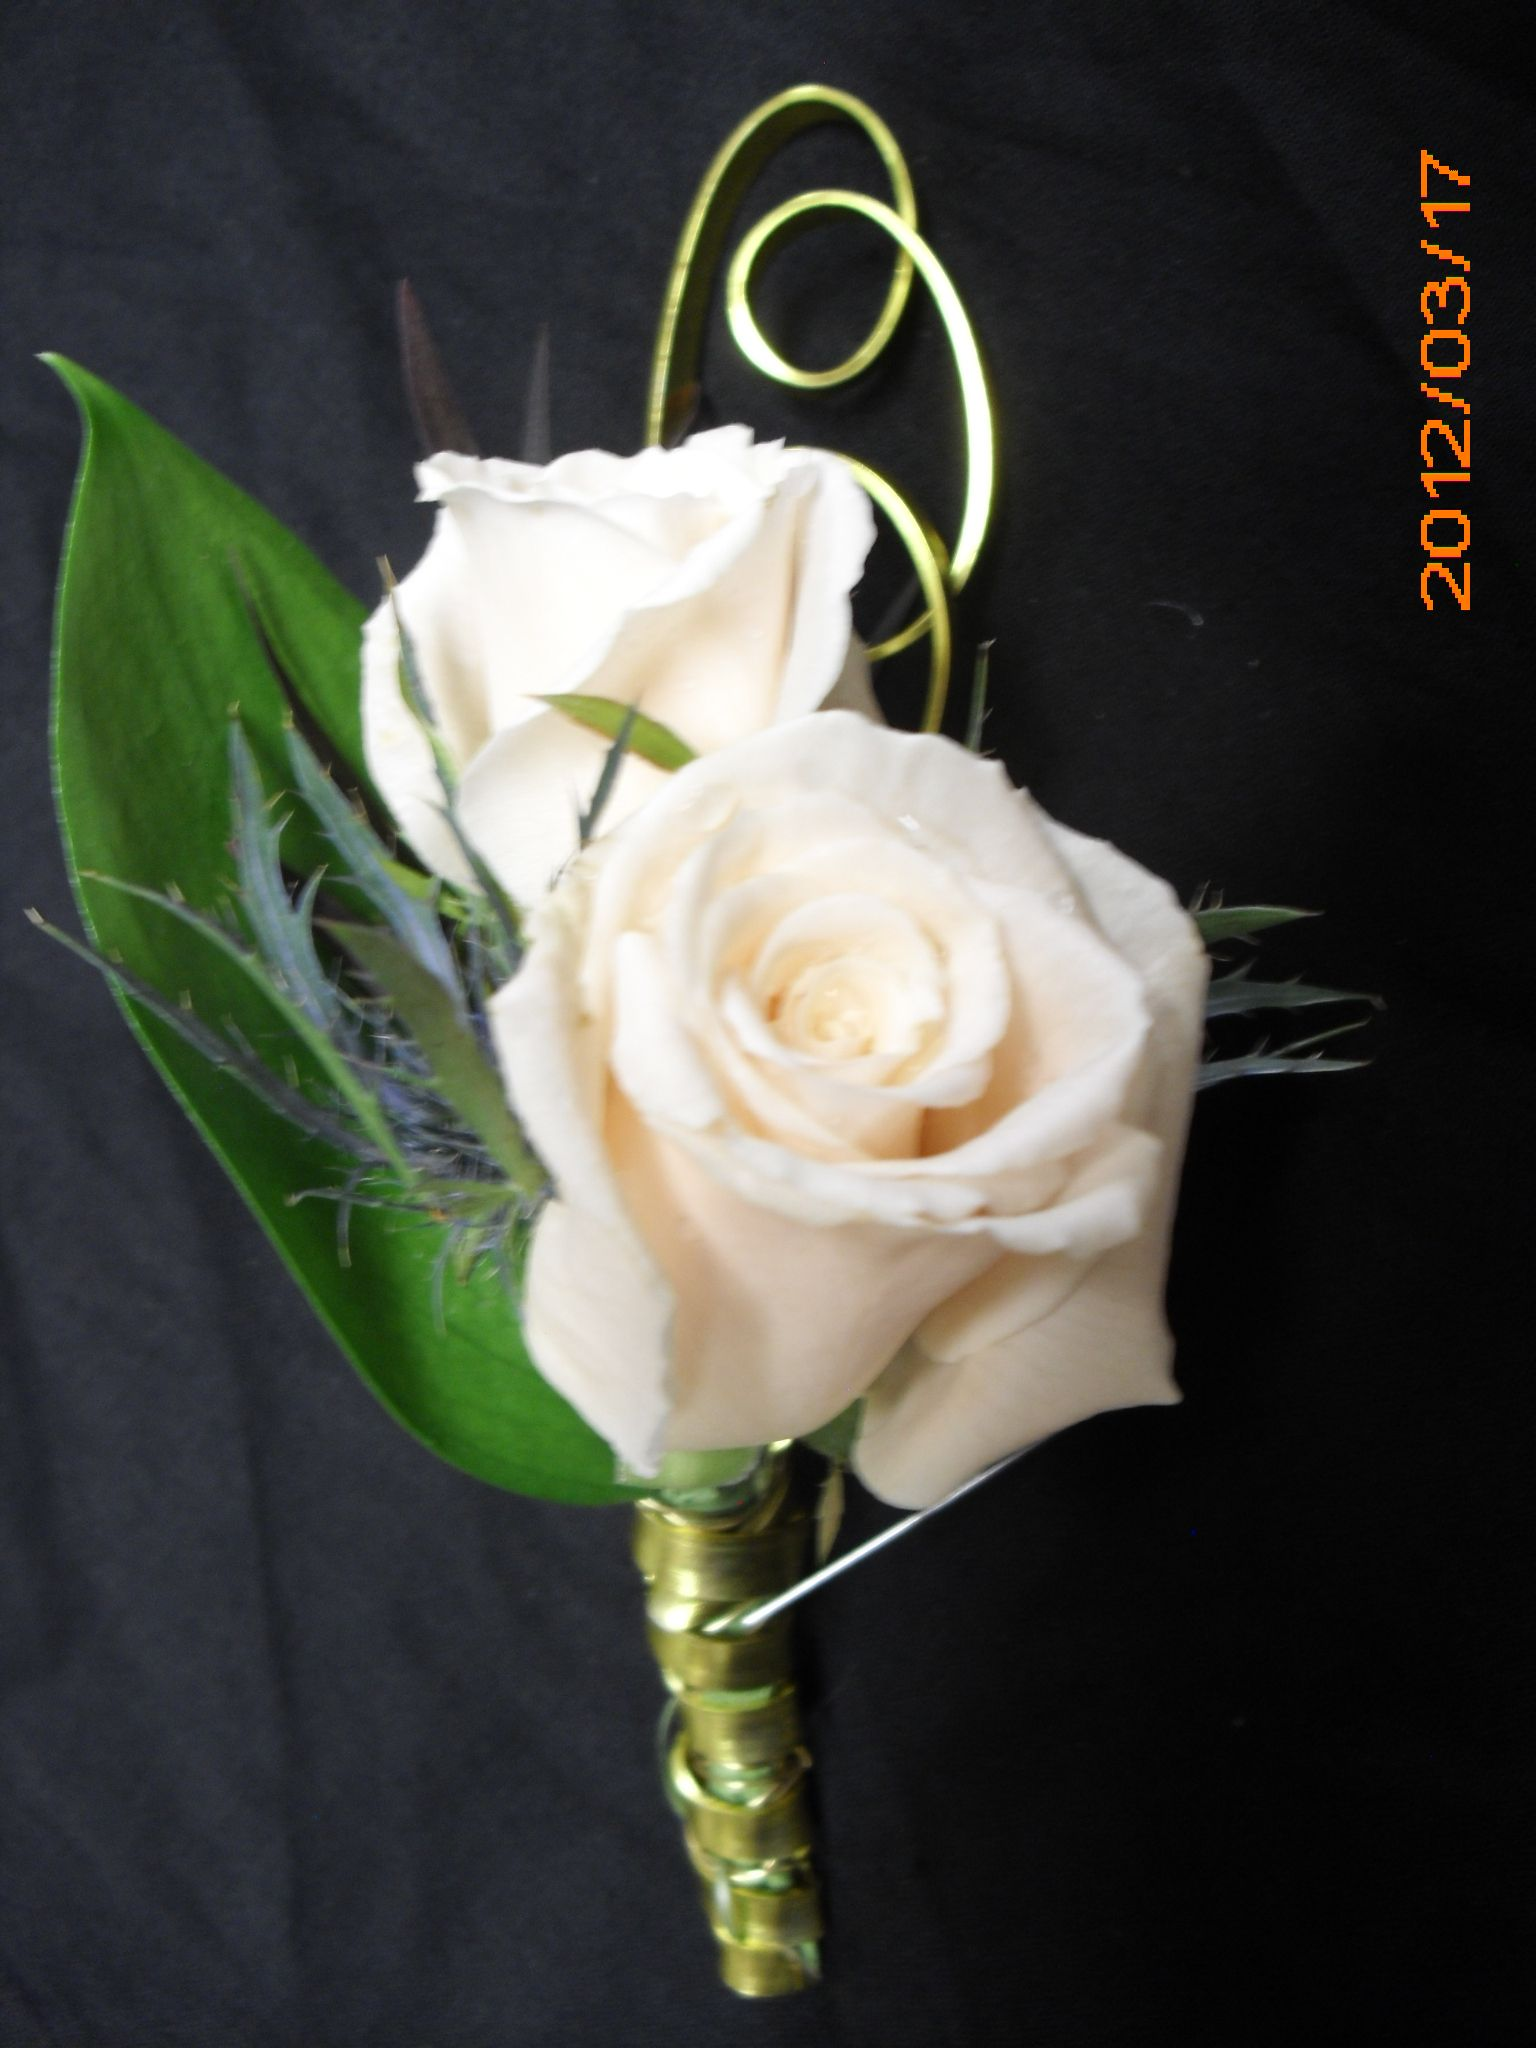 cream rose boutonniere for wedding, events and prom. | My corsages ...